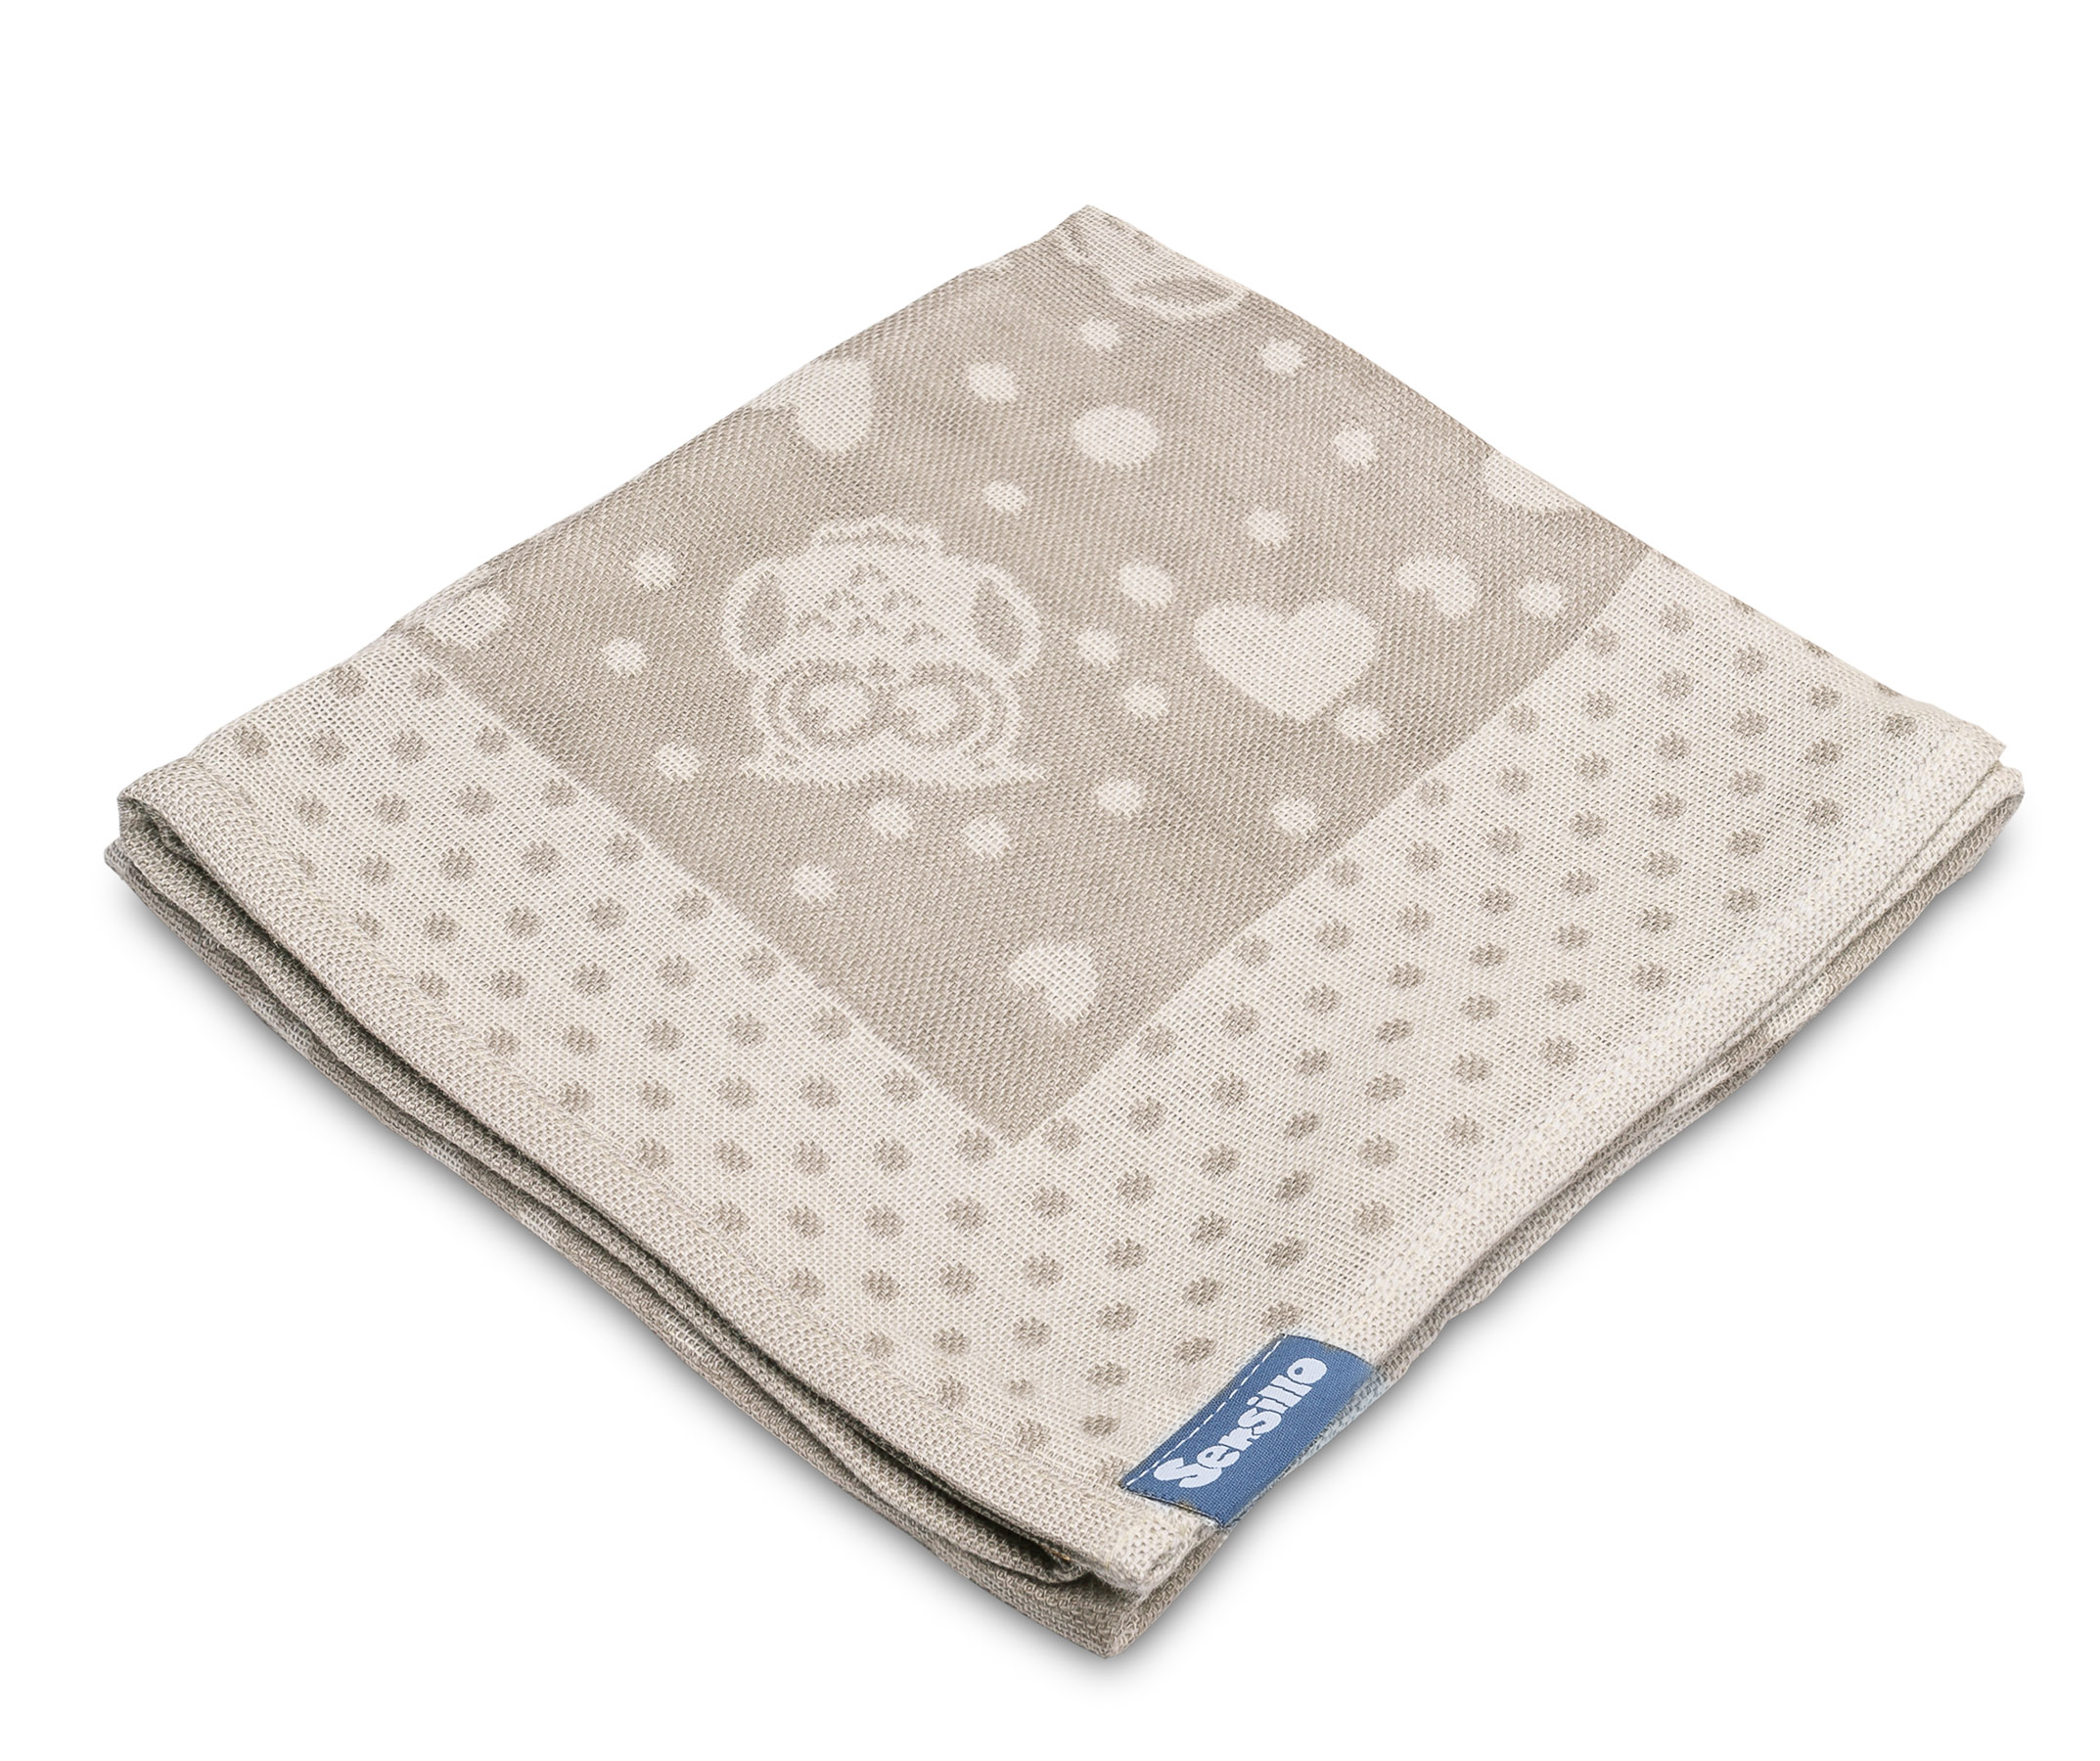 Bamboo and cotton diaper – latte owls